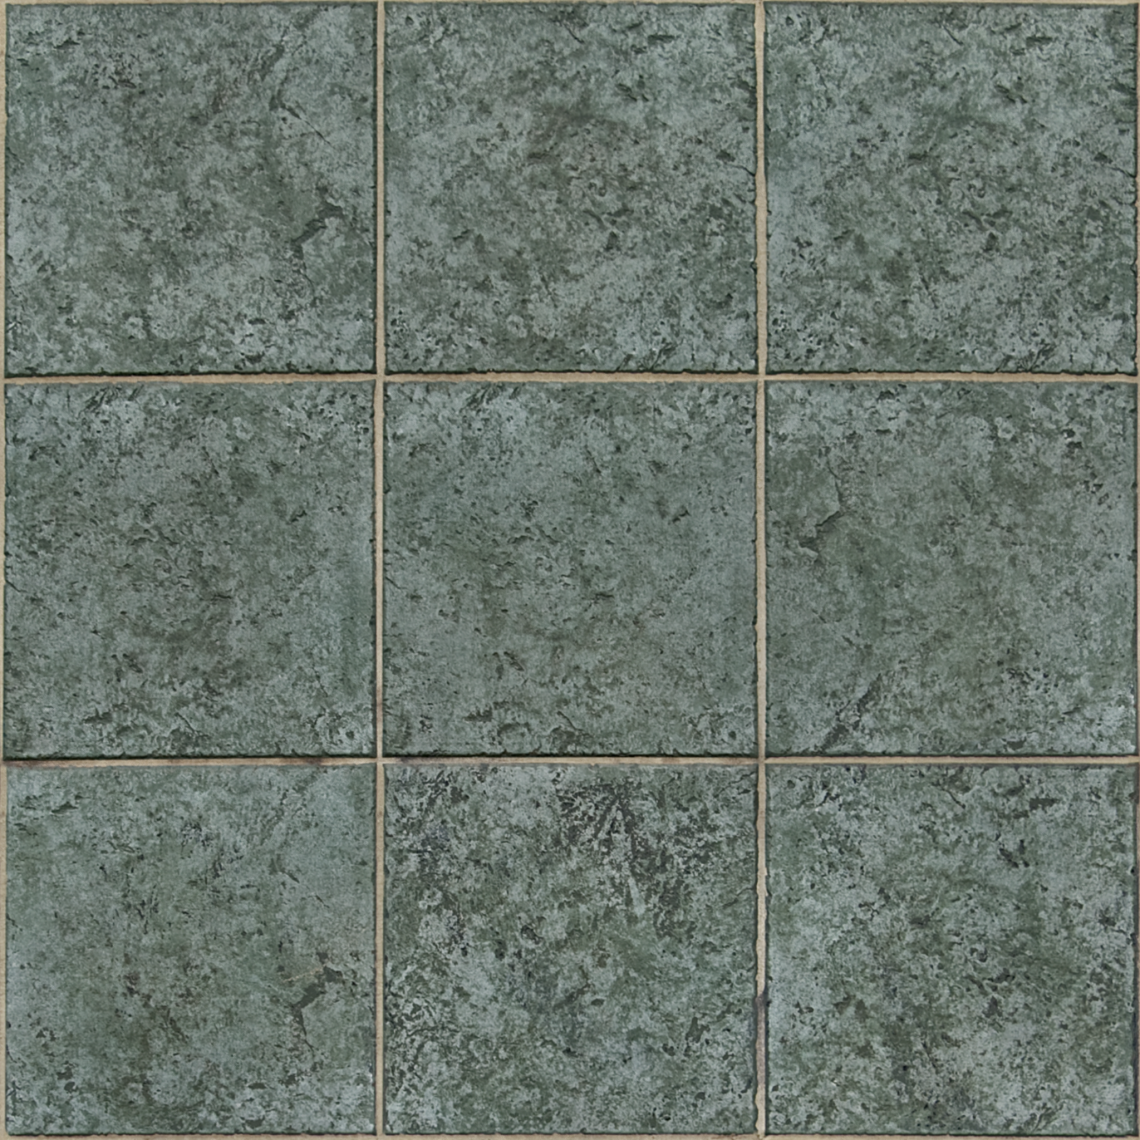 Green-Tiles-01-Albedo - Seamless